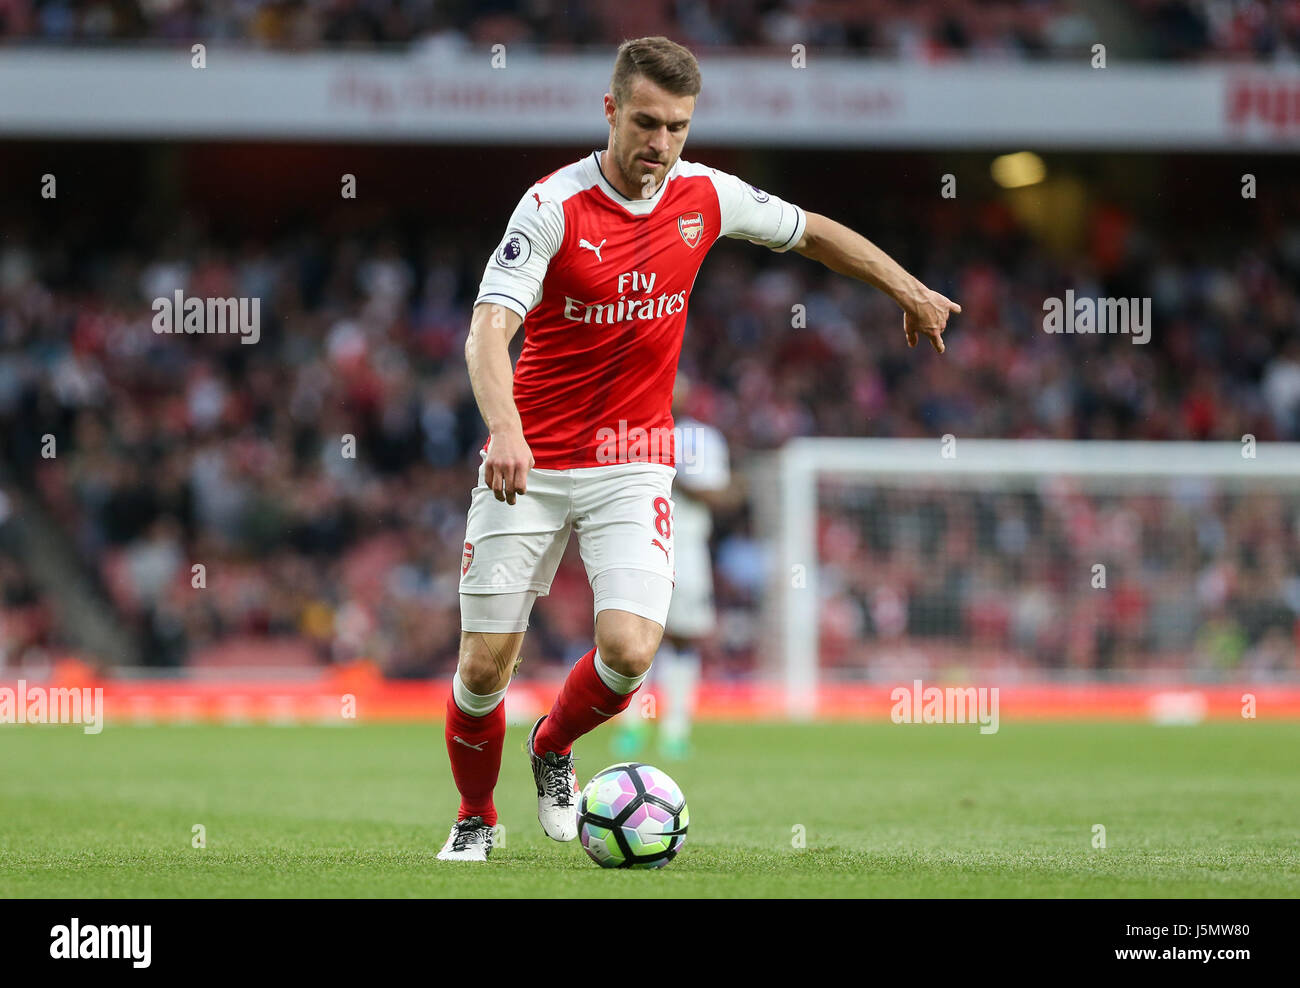 Aaron Ramsey of Arsenal during the Premier League match between Arsenal and Sunderland AFC at the Emirates Stadium - Stock Image